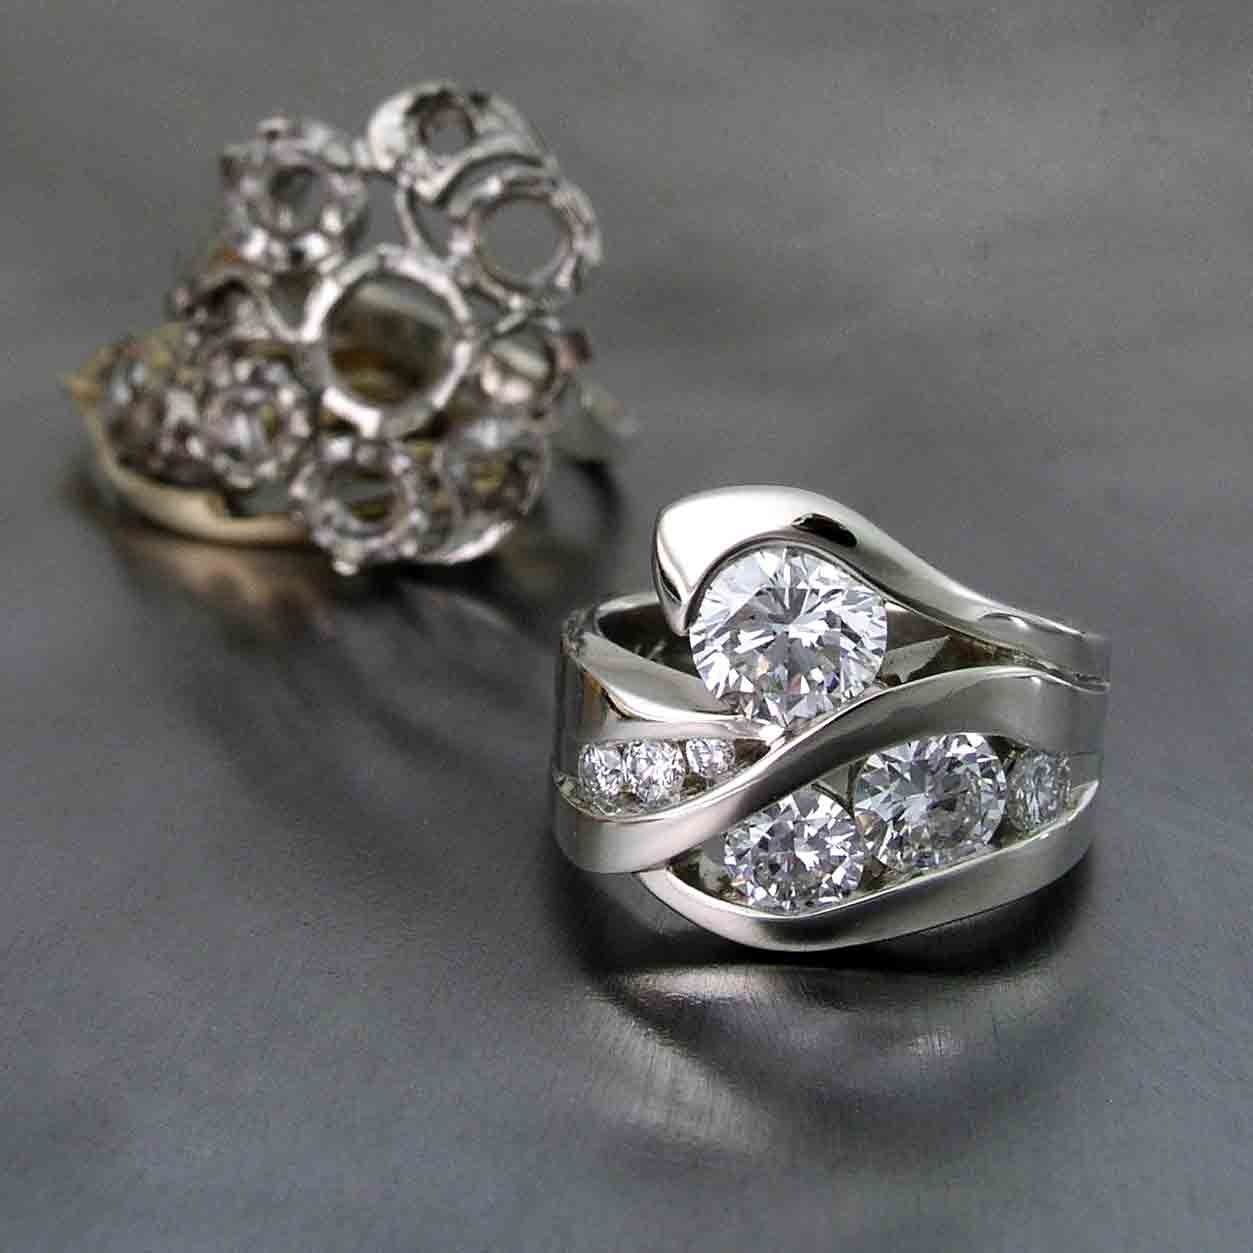 Restyle Using Several Of The Customer's Rings The New Design Turned Out  Gorgeous! Douglas